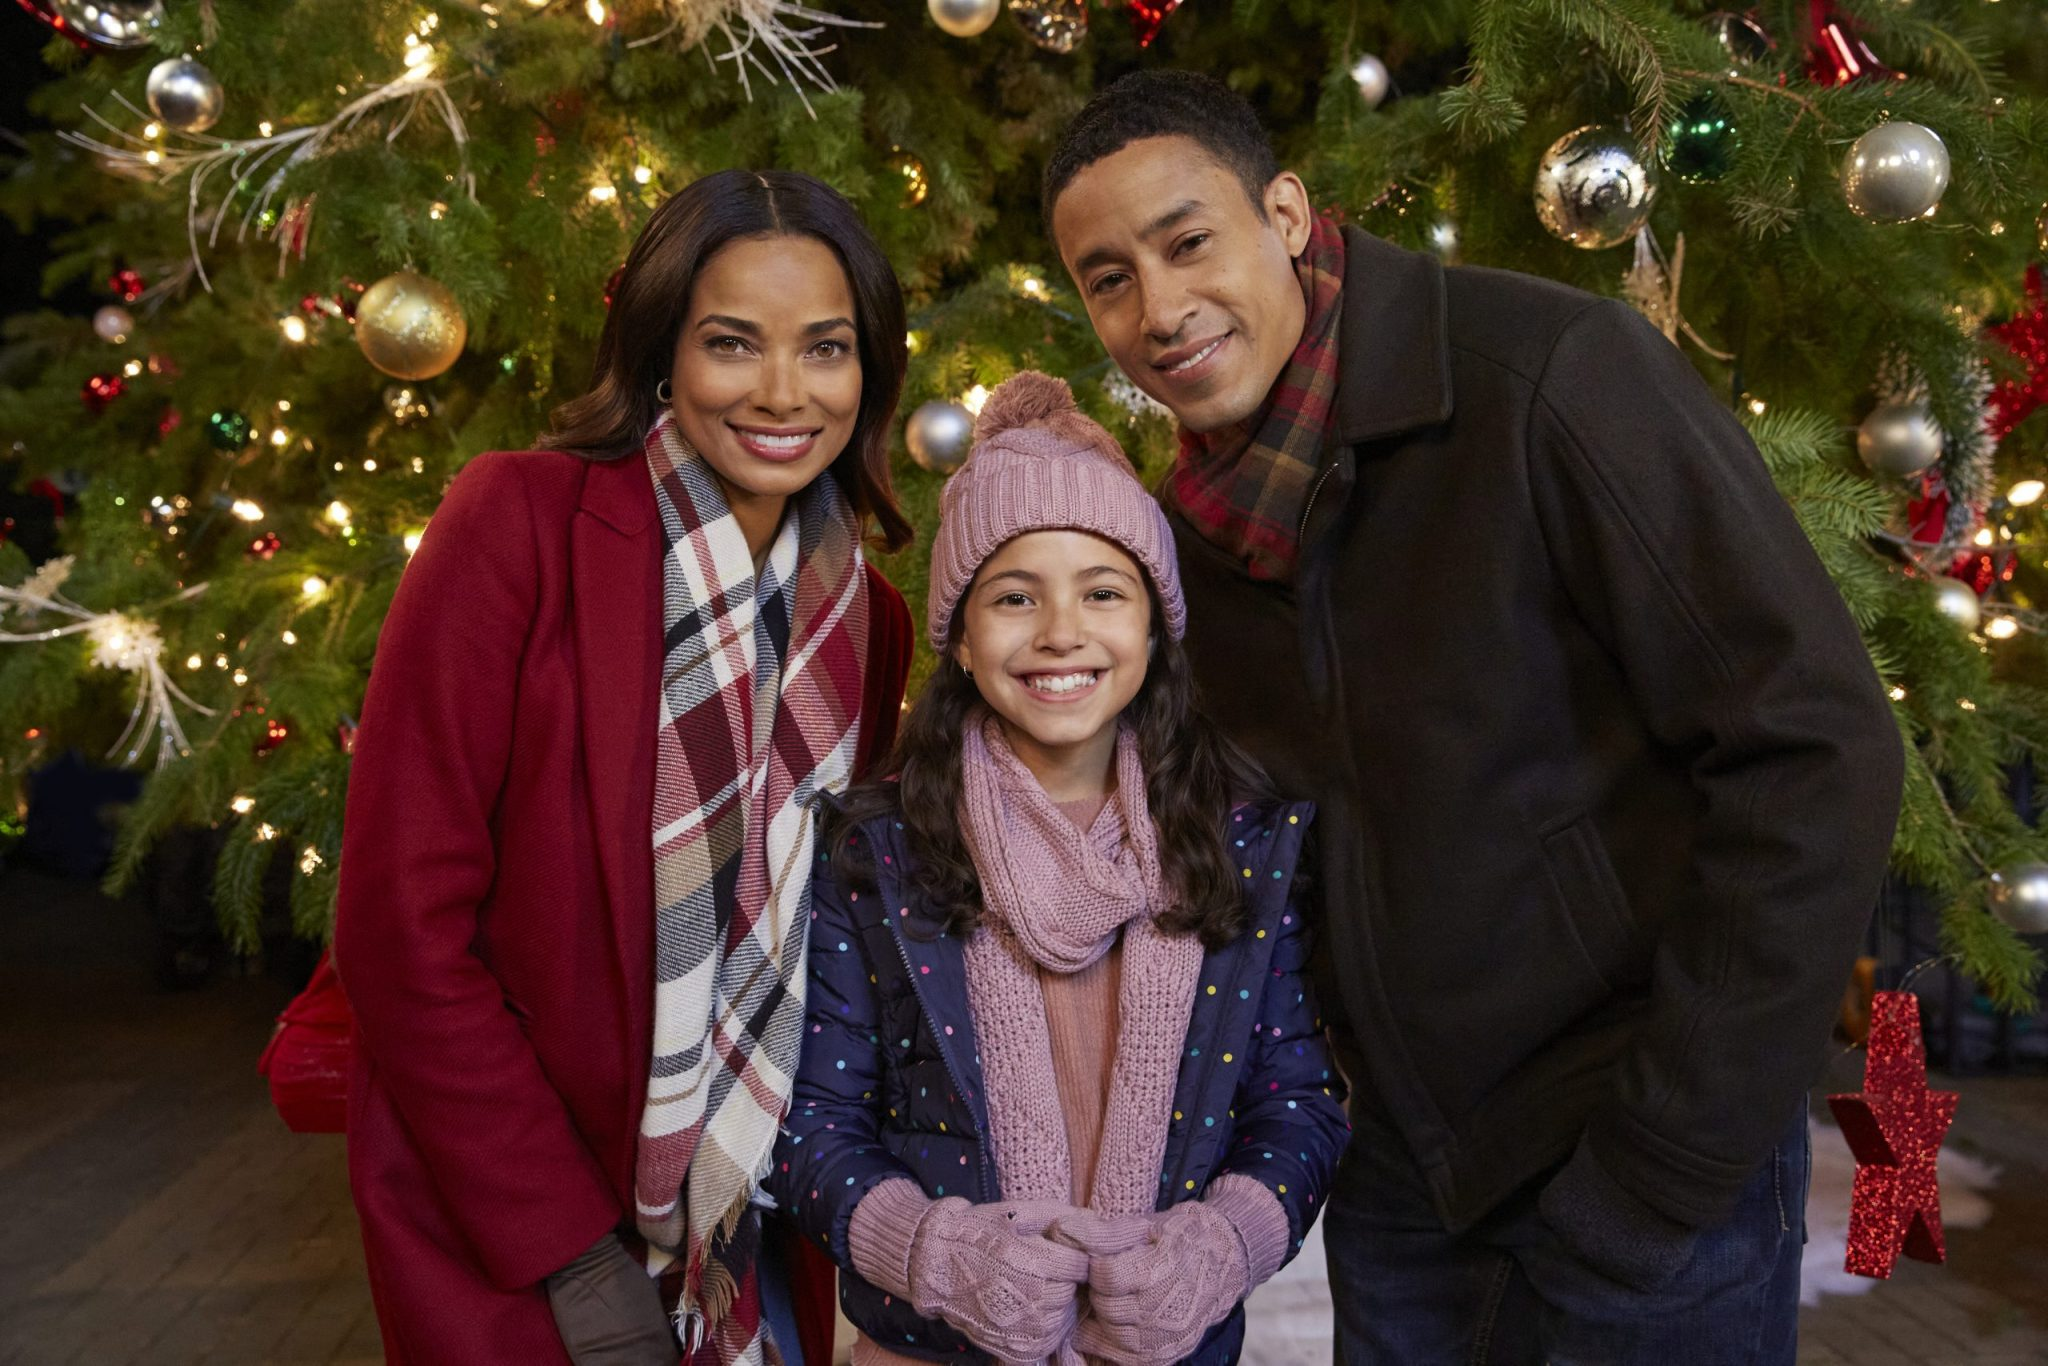 Hallmark, Christmas Tree Grows In Colorado, Photo: Rochelle Aytes, Grace Sunar, Mark Taylor Credit: ©2020 Crown Media United States LLC/Photographer: Ryan Plummer